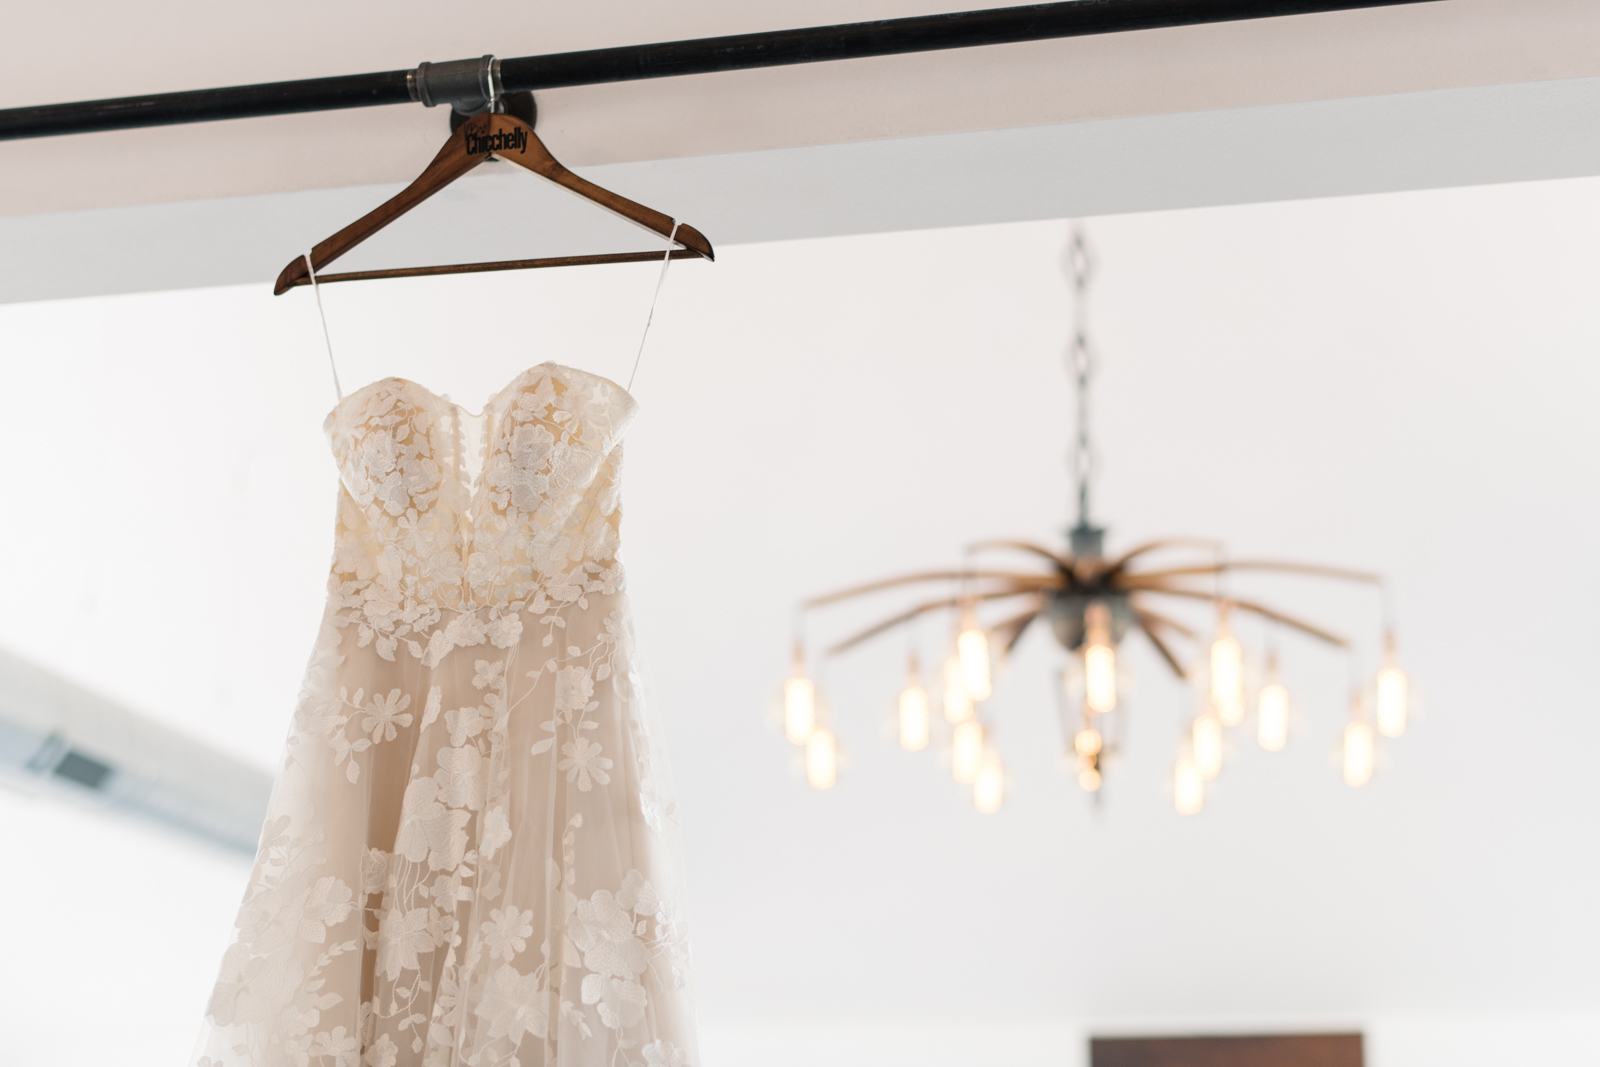 wedding dress hanging in koru berry farm wedding venue